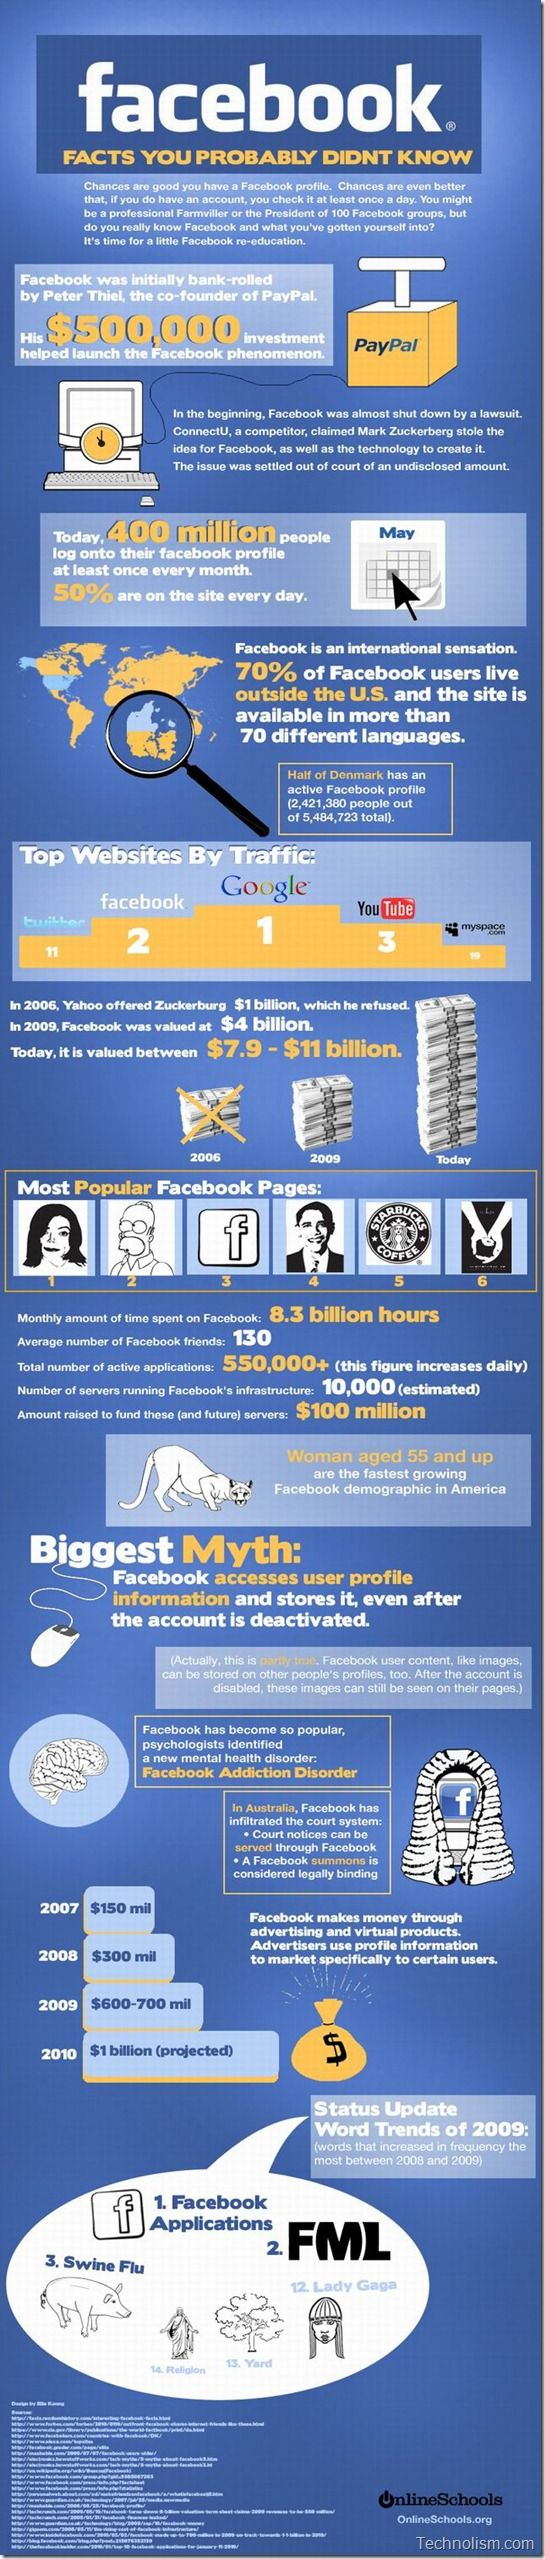 15+ Facebook facts you would like to know!